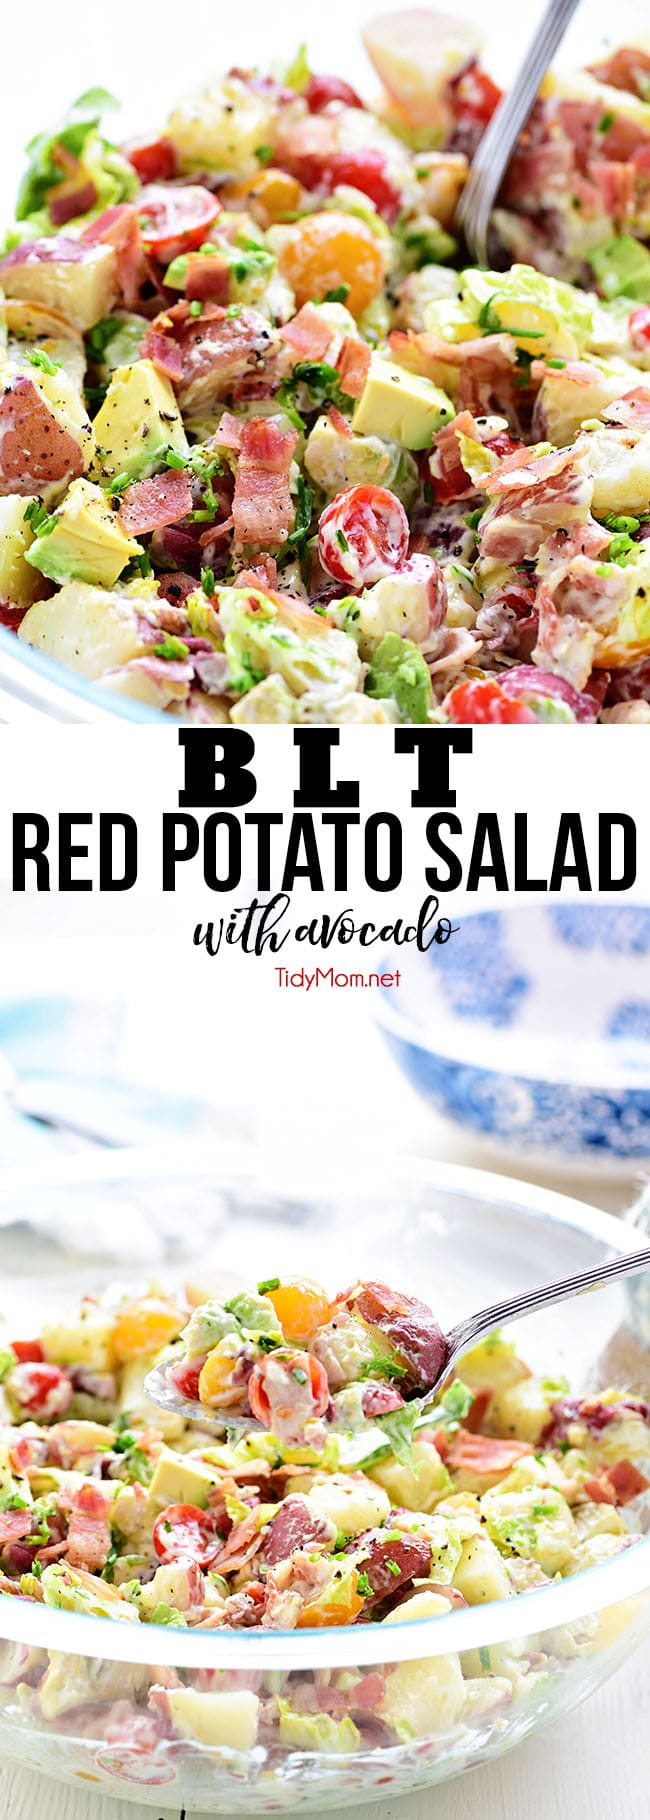 This easy BLT Red Potato Salad has an avocado ranch dressing along with bacon, lettuce, and tomato! It's a simple crowd-pleasing side dish! Recipe video + printable recipe at TidyMom.net #blt #potatosalad #avocado #sidedish